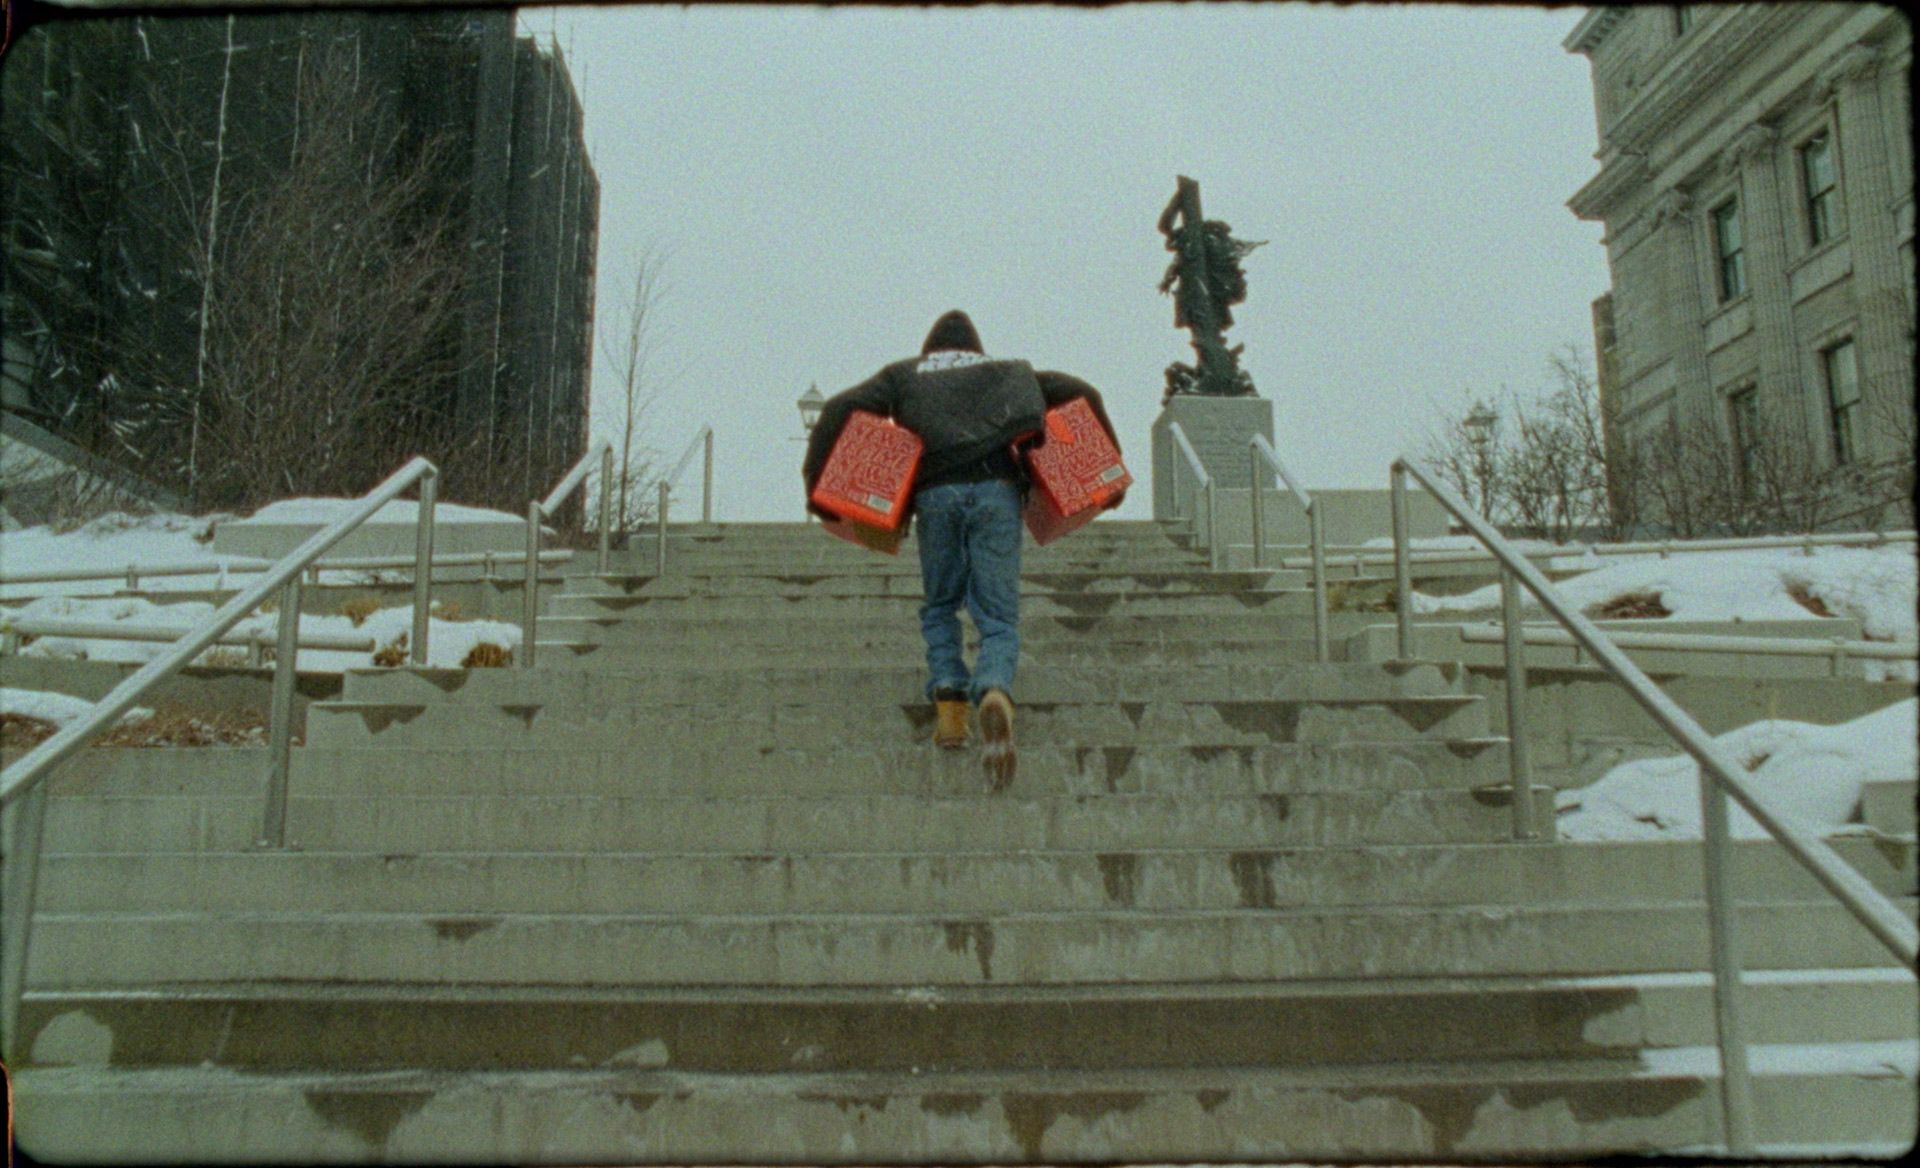 Man climbing up an outdoor staircase in Montreal's winter with a little bit of snow and two cases of Havana Club limited edition under each arm.